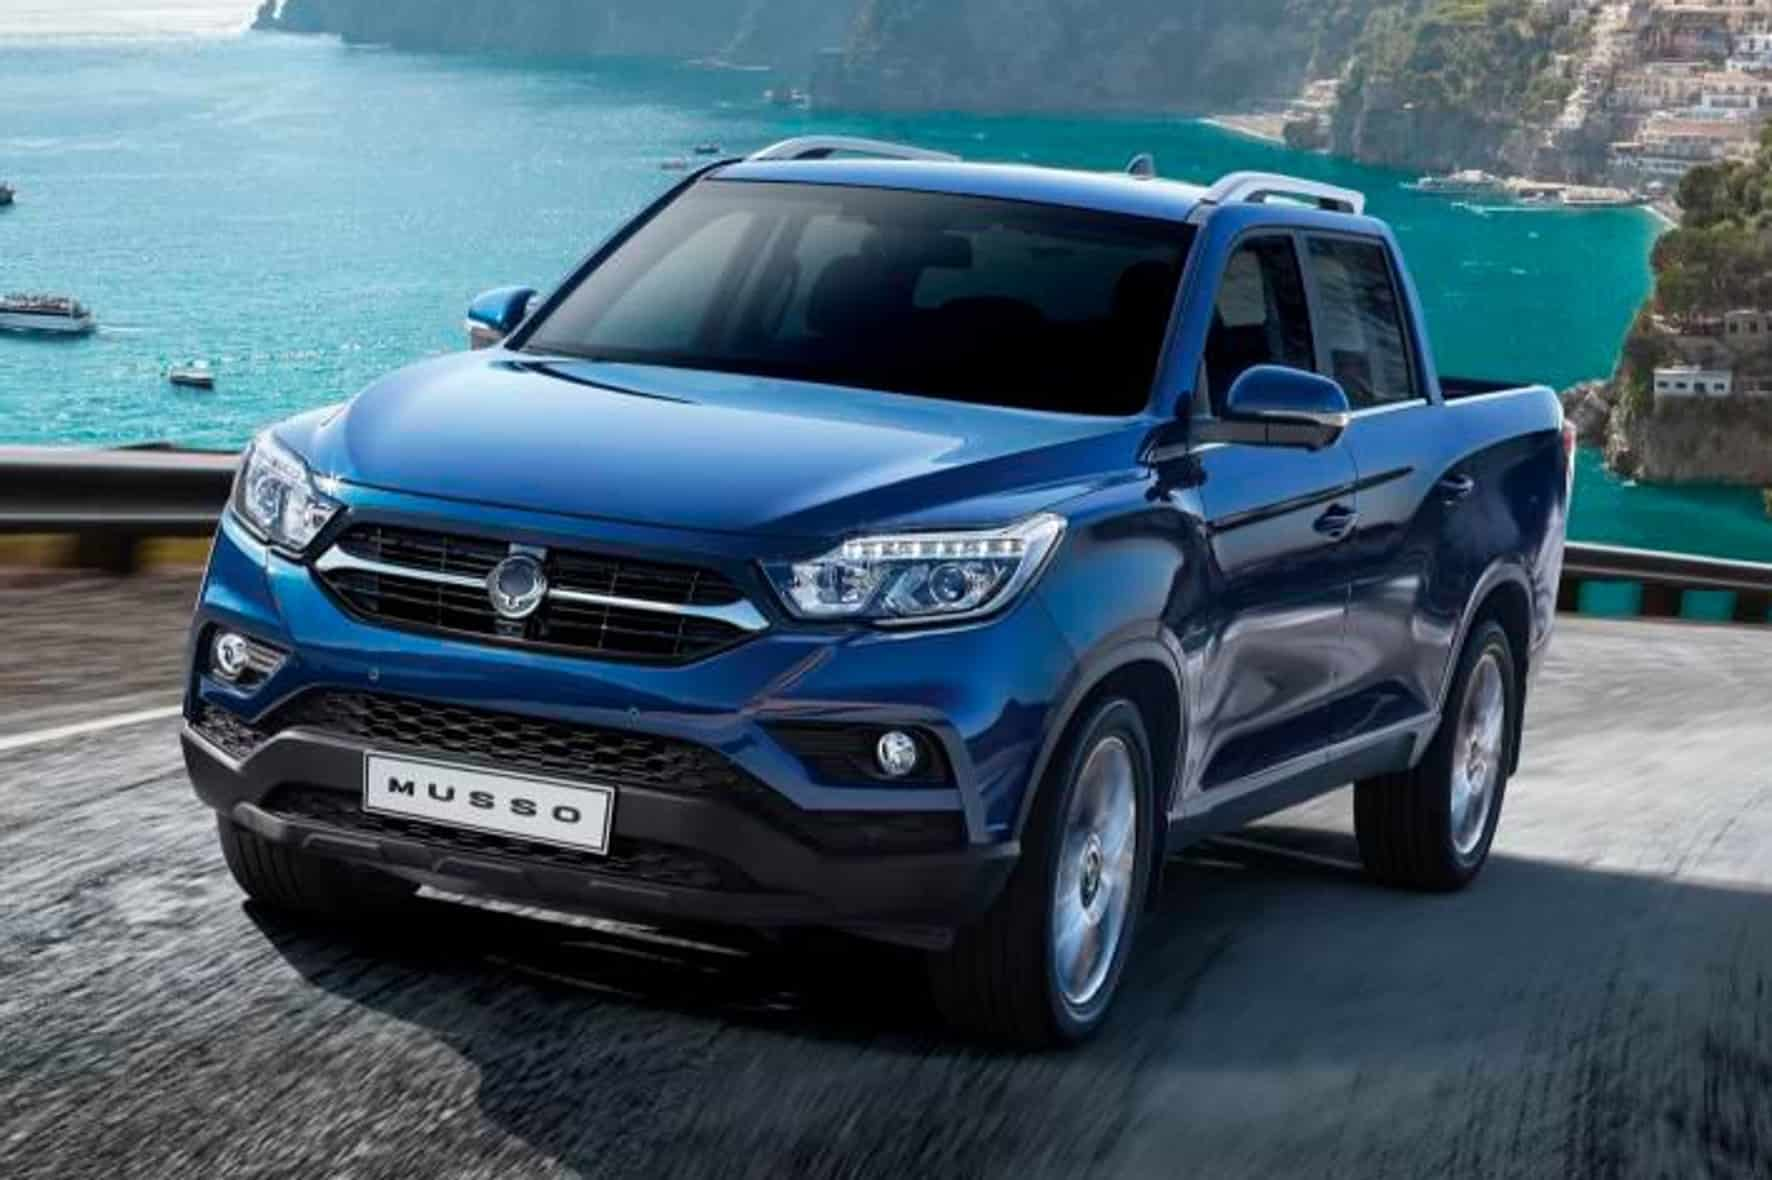 SsangYong Pick-up namens Musso